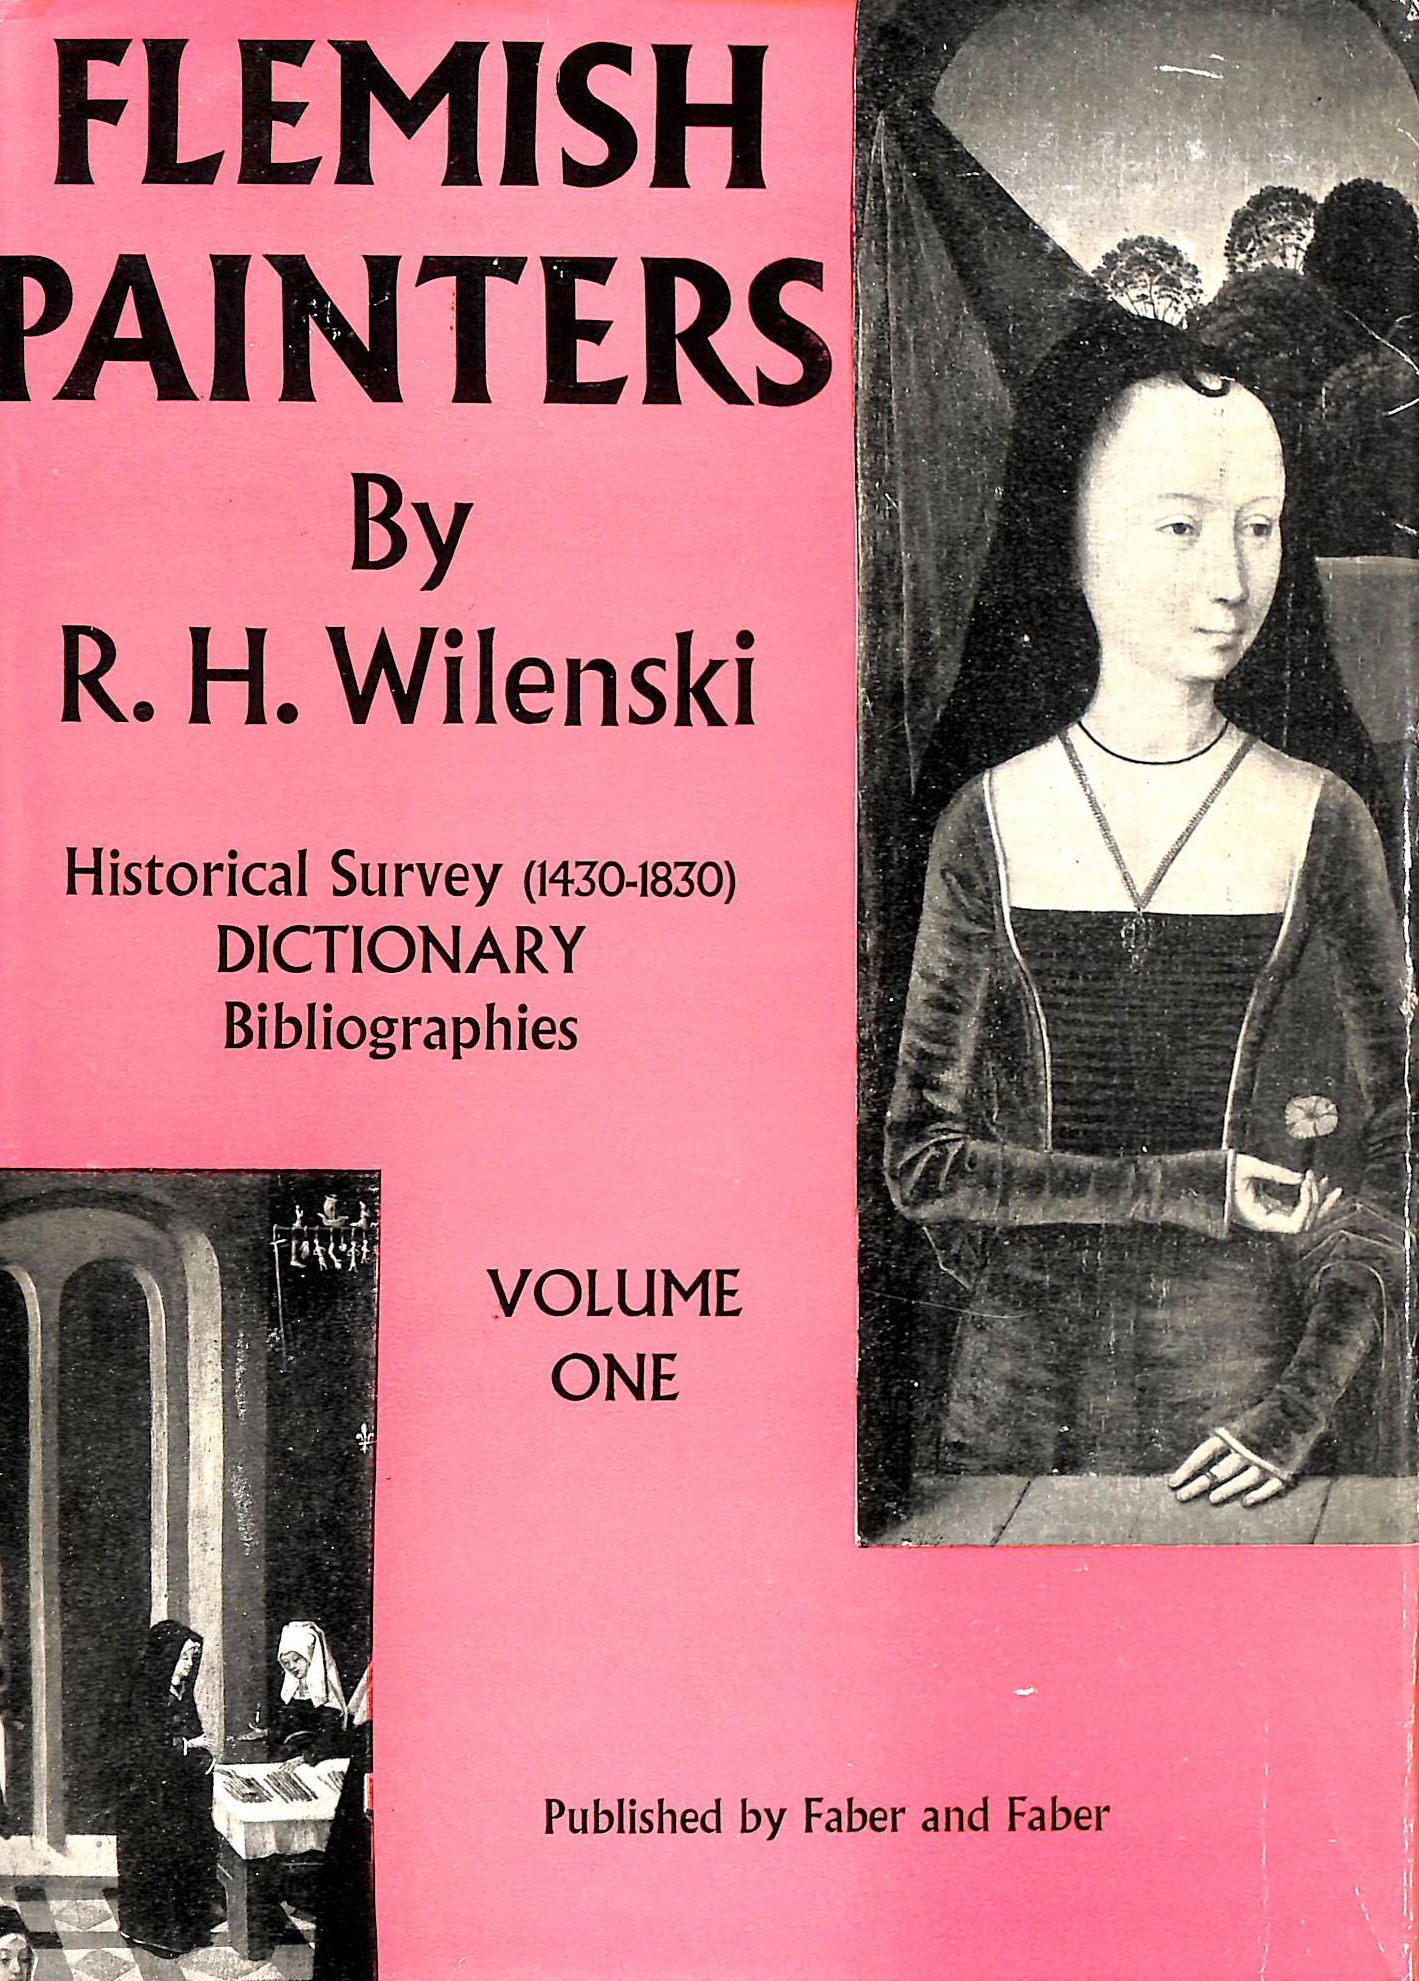 Image for Flemish Painters, 1430-1830. Volume One: Dictionary, Bibliographies.